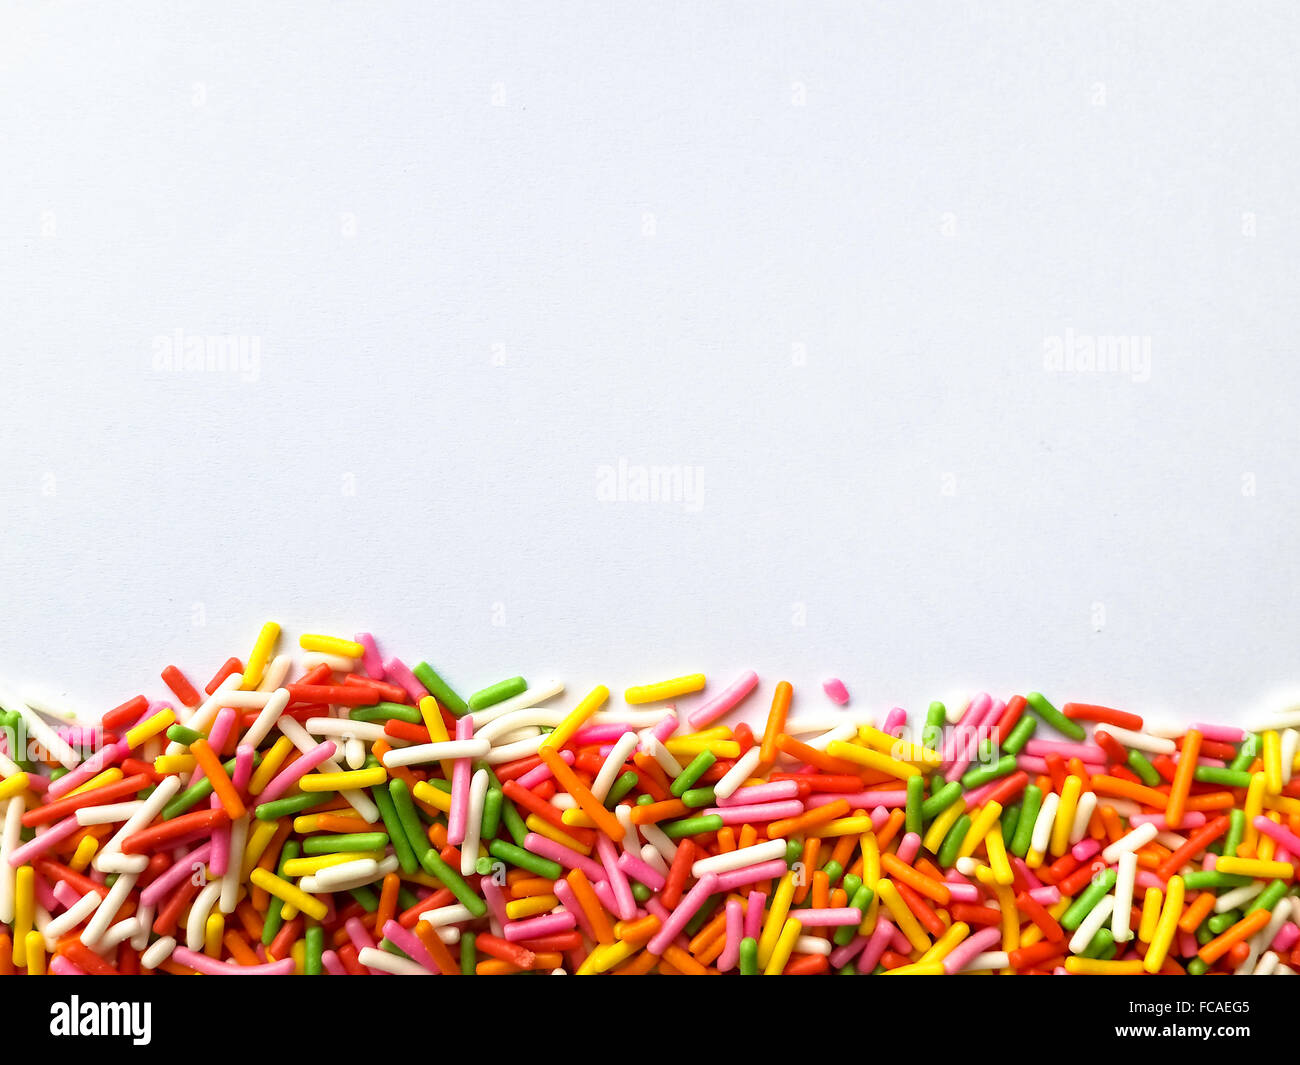 Colorful sprinkle background - Stock Image